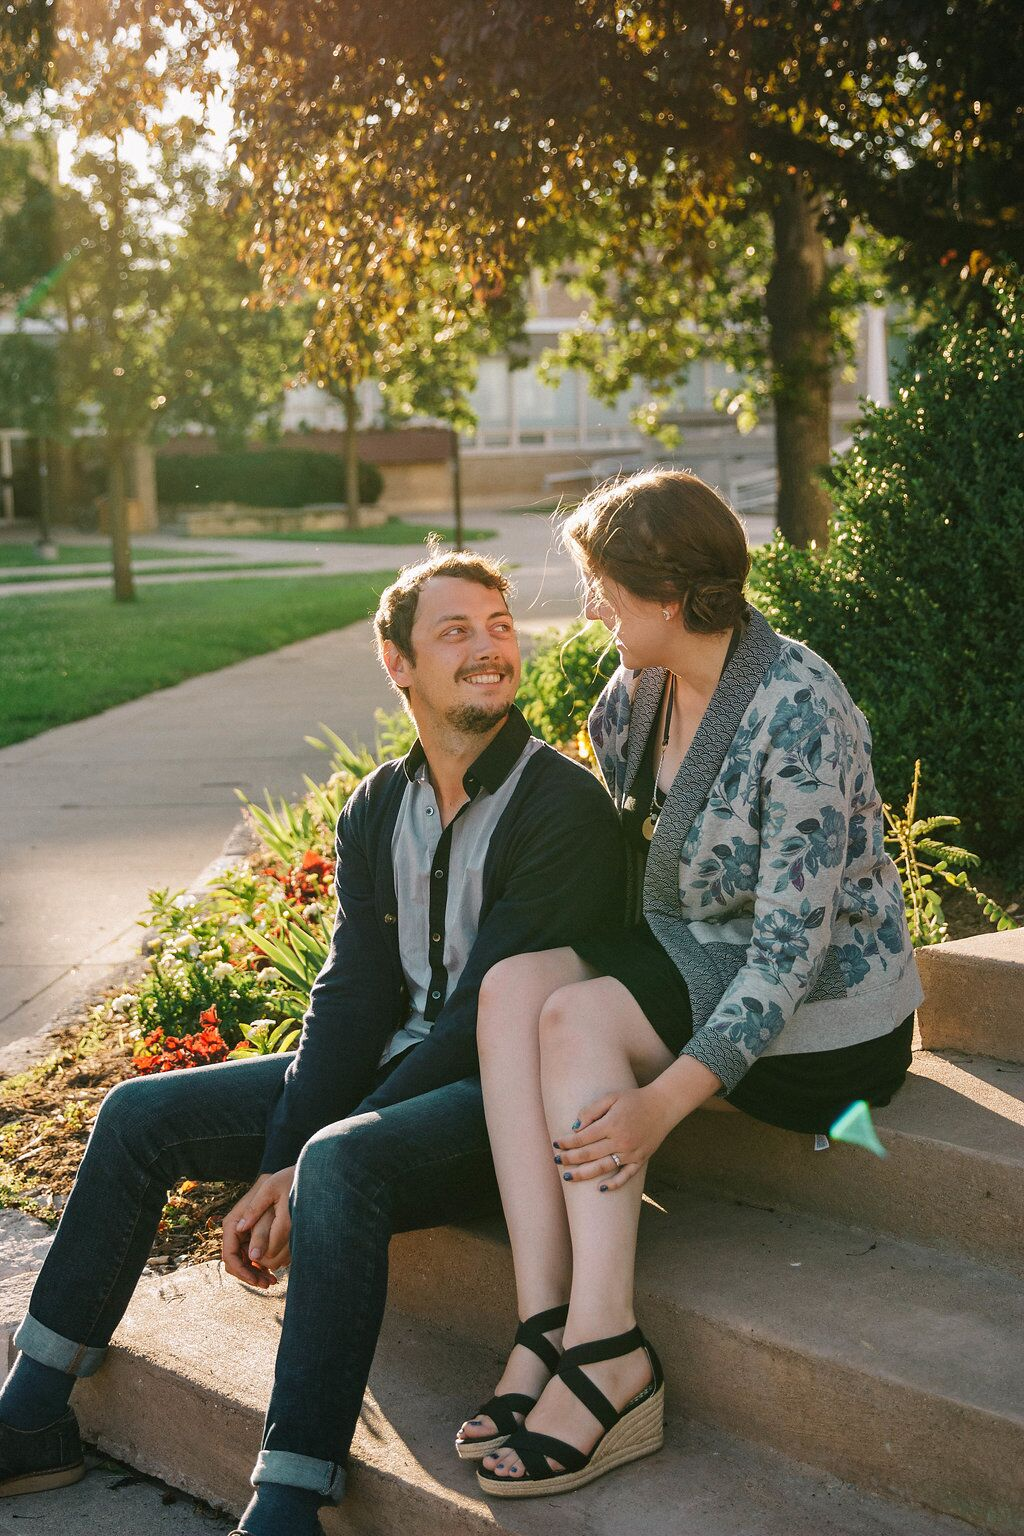 College Band Sweethearts by Maple Hope Photography featured on Destination Wisconsin Wedding Blog